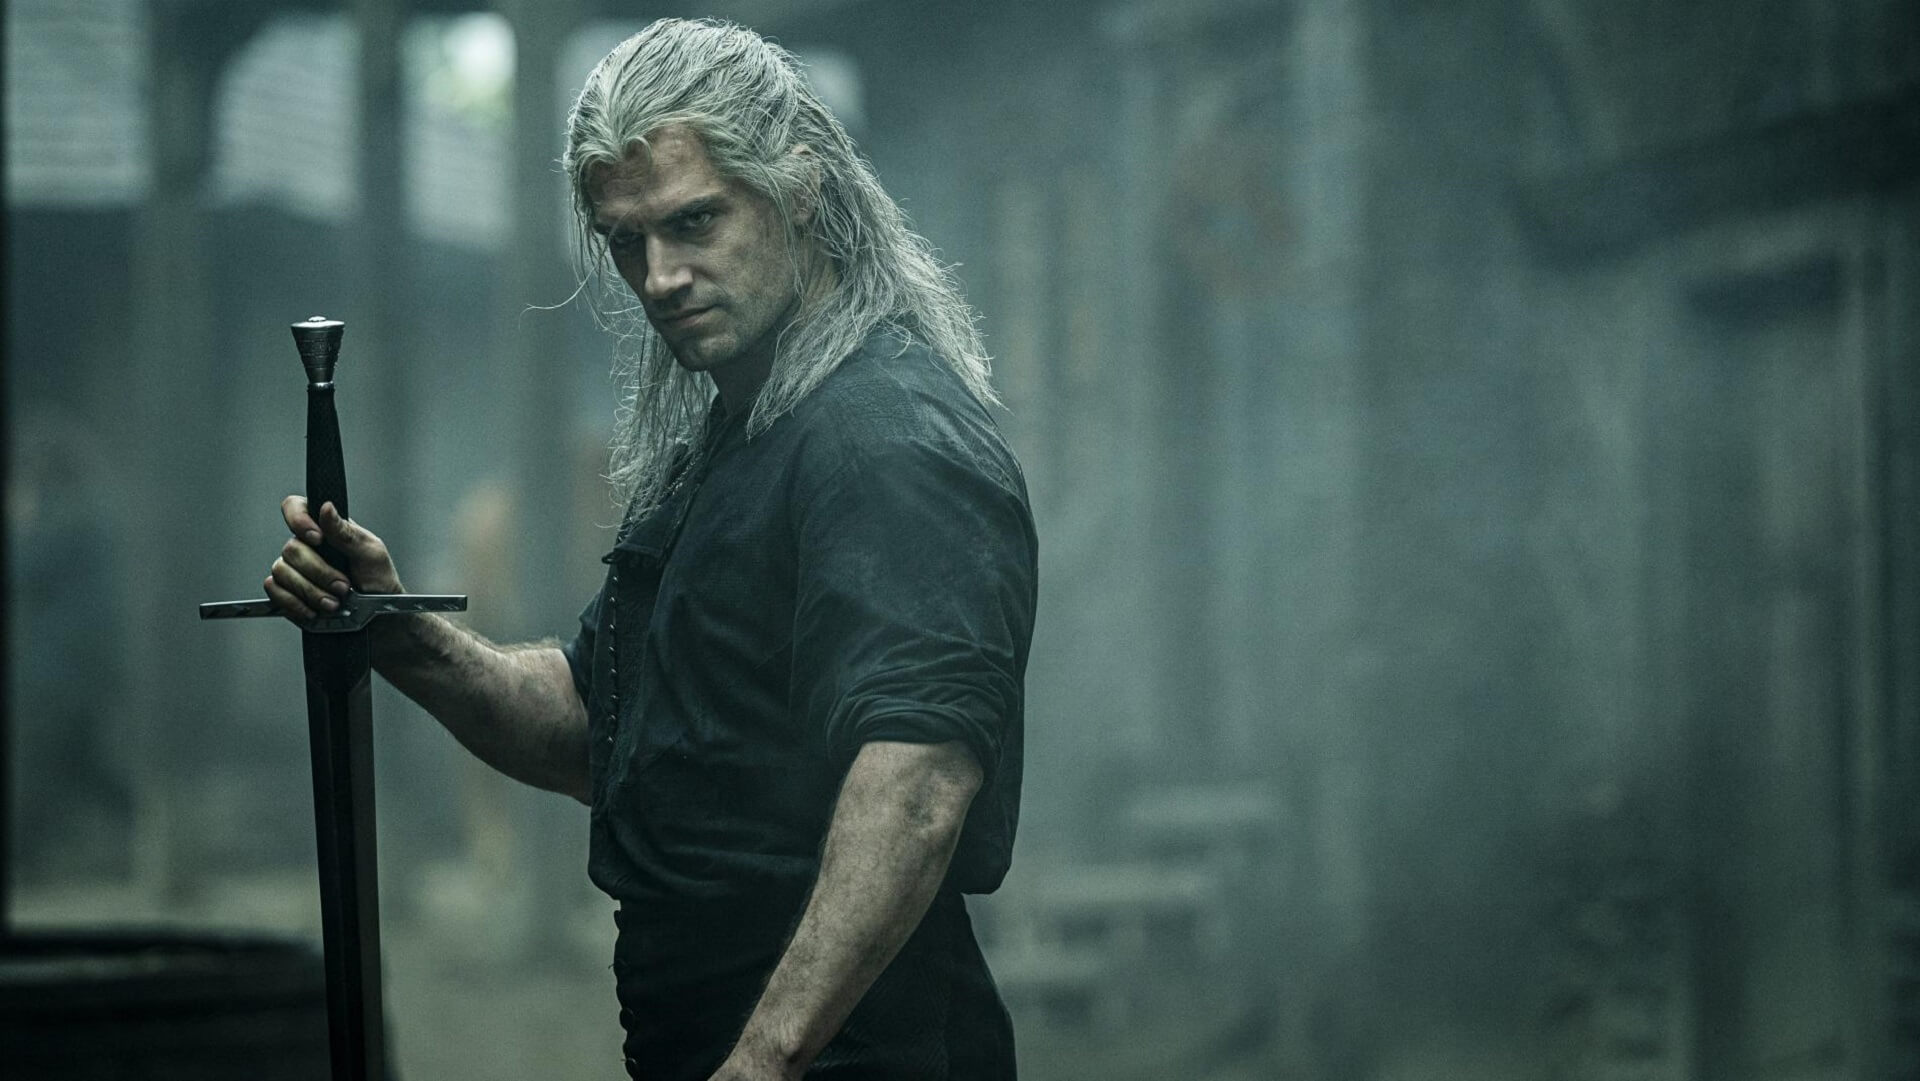 The Witcher First Season Ratings are Higher Than Game of Thrones Finale